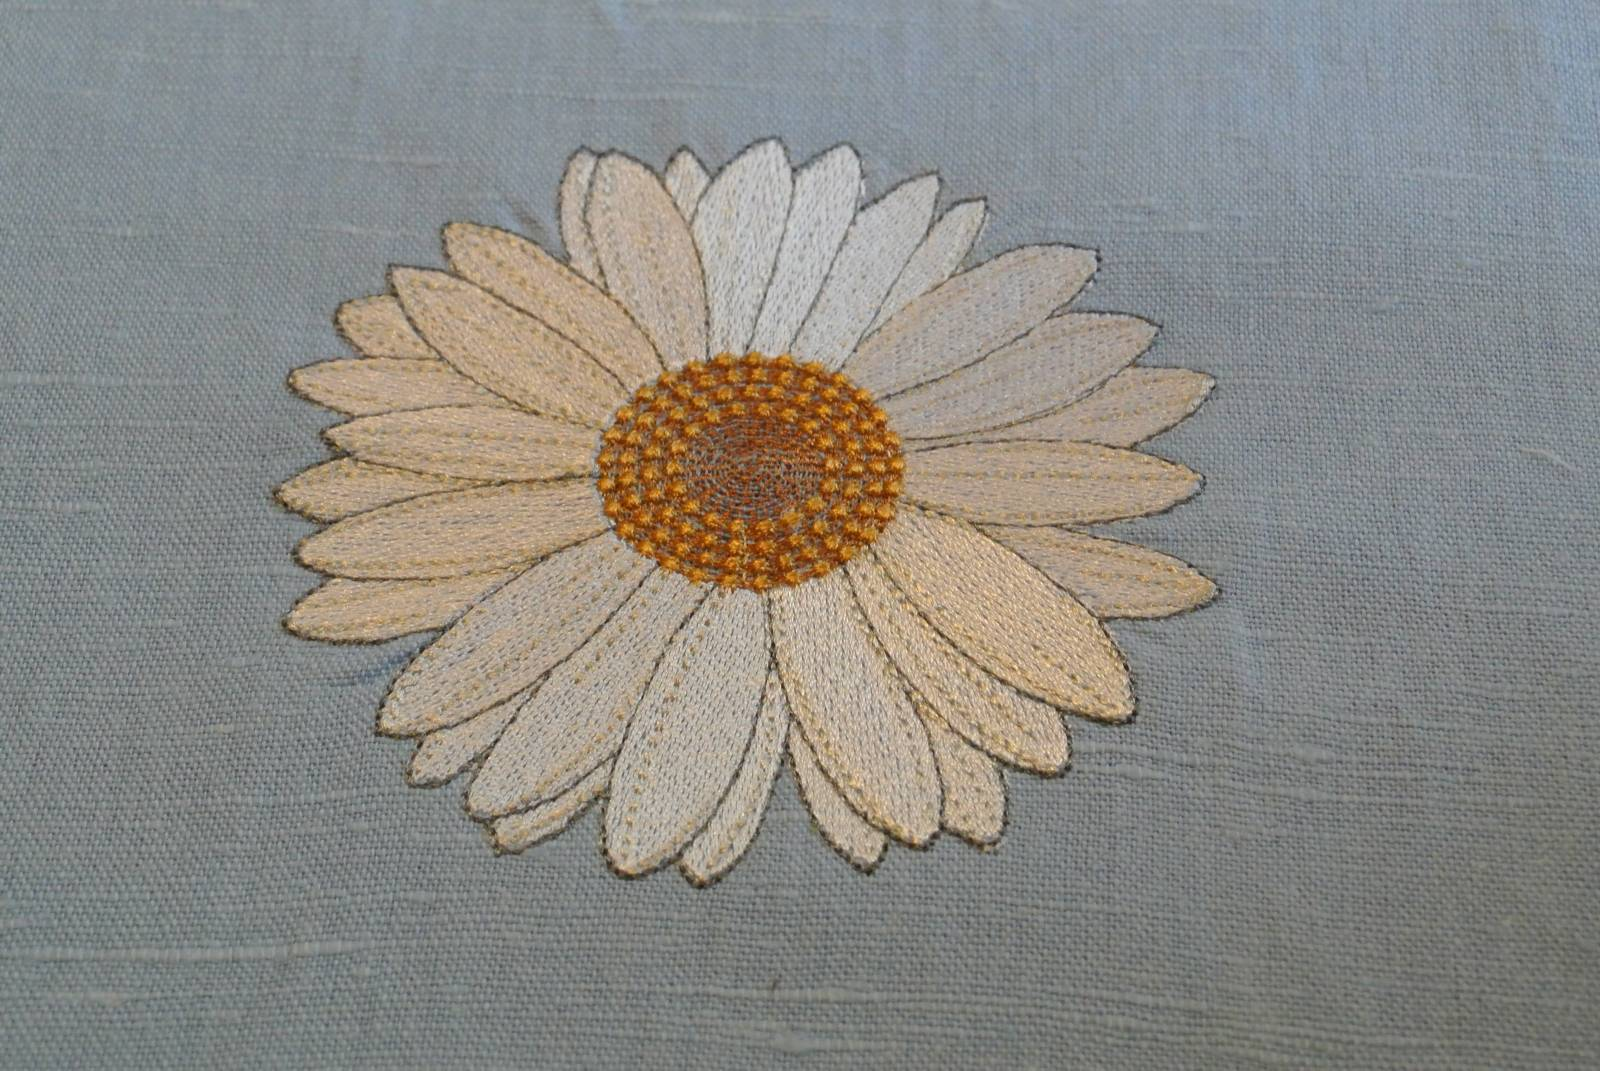 Daisy Free Embroidery Design Free Embroidery Designs Links And